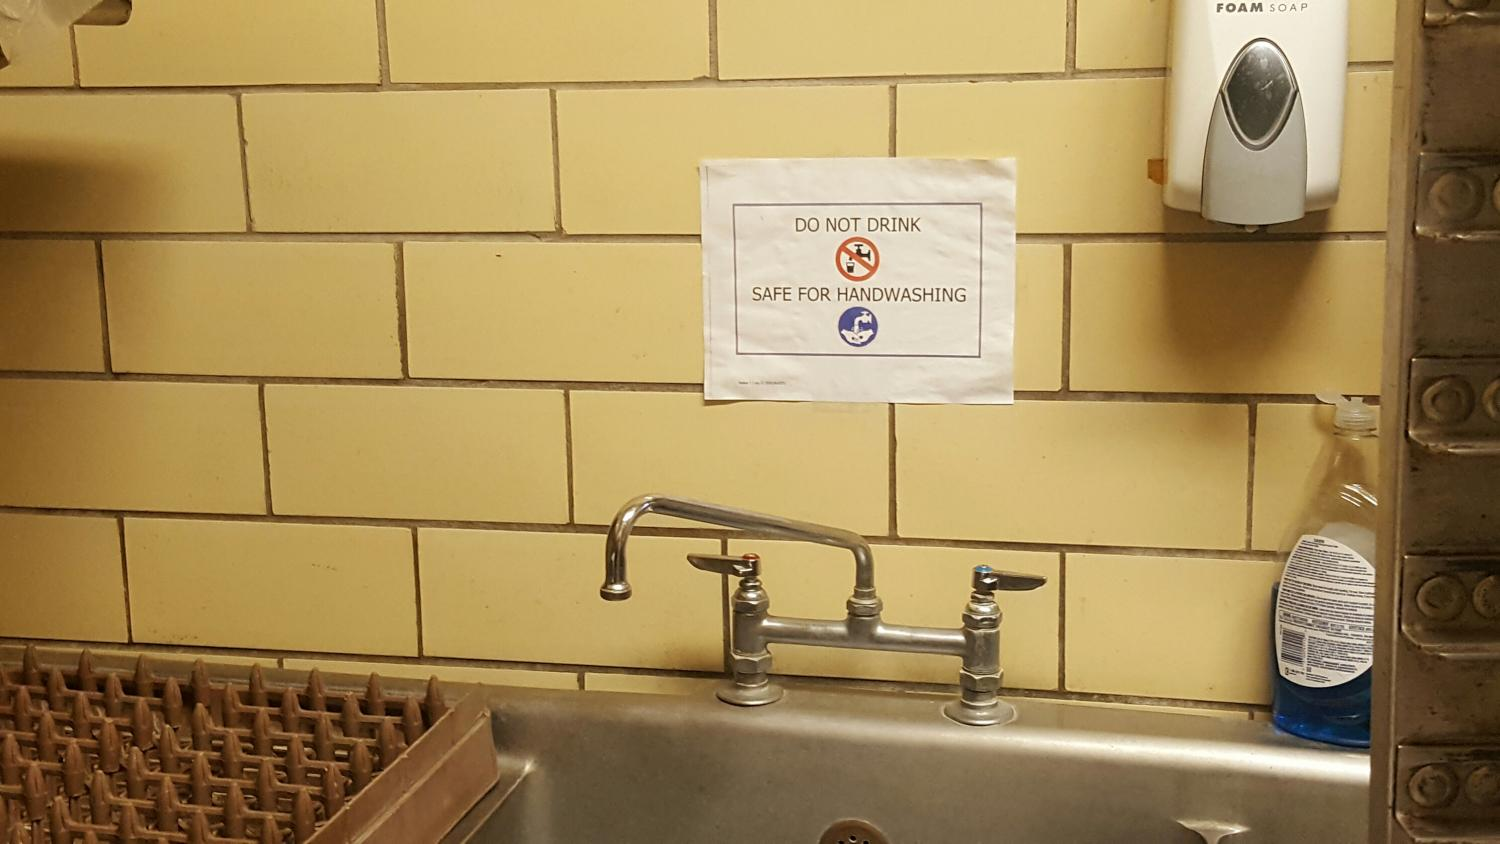 Testing 194 samples in the district, officials discover that 25 water outlets exceeded the legal limit of 15 ug/l in parts per billion. The sink in cafeteria cookie room is one such spigot, now advising that the water is not for consumption.